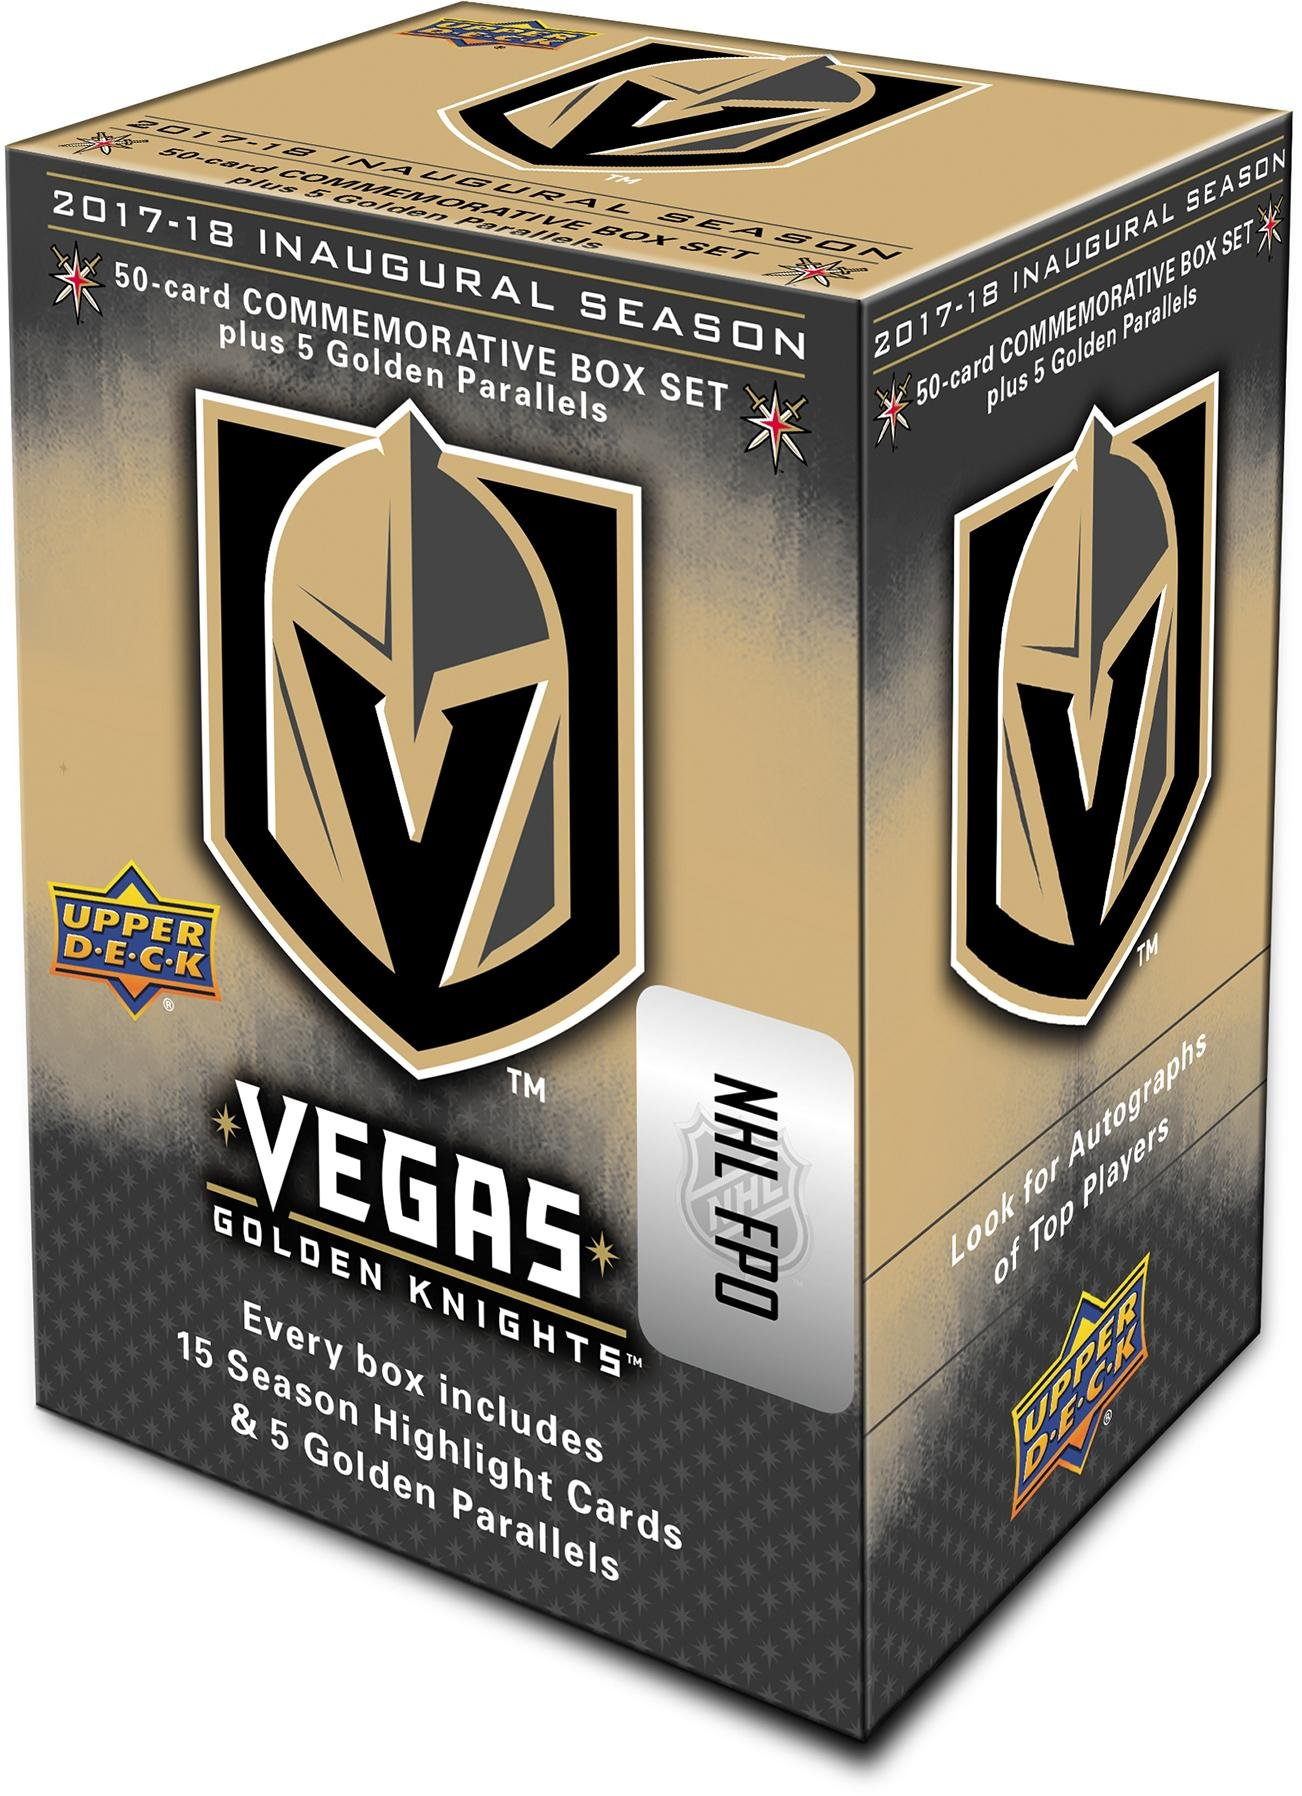 2018 Upper Deck Vegas Golden Knights Inaugural Season Commemorative 55 Card Set Hockey Team Sets